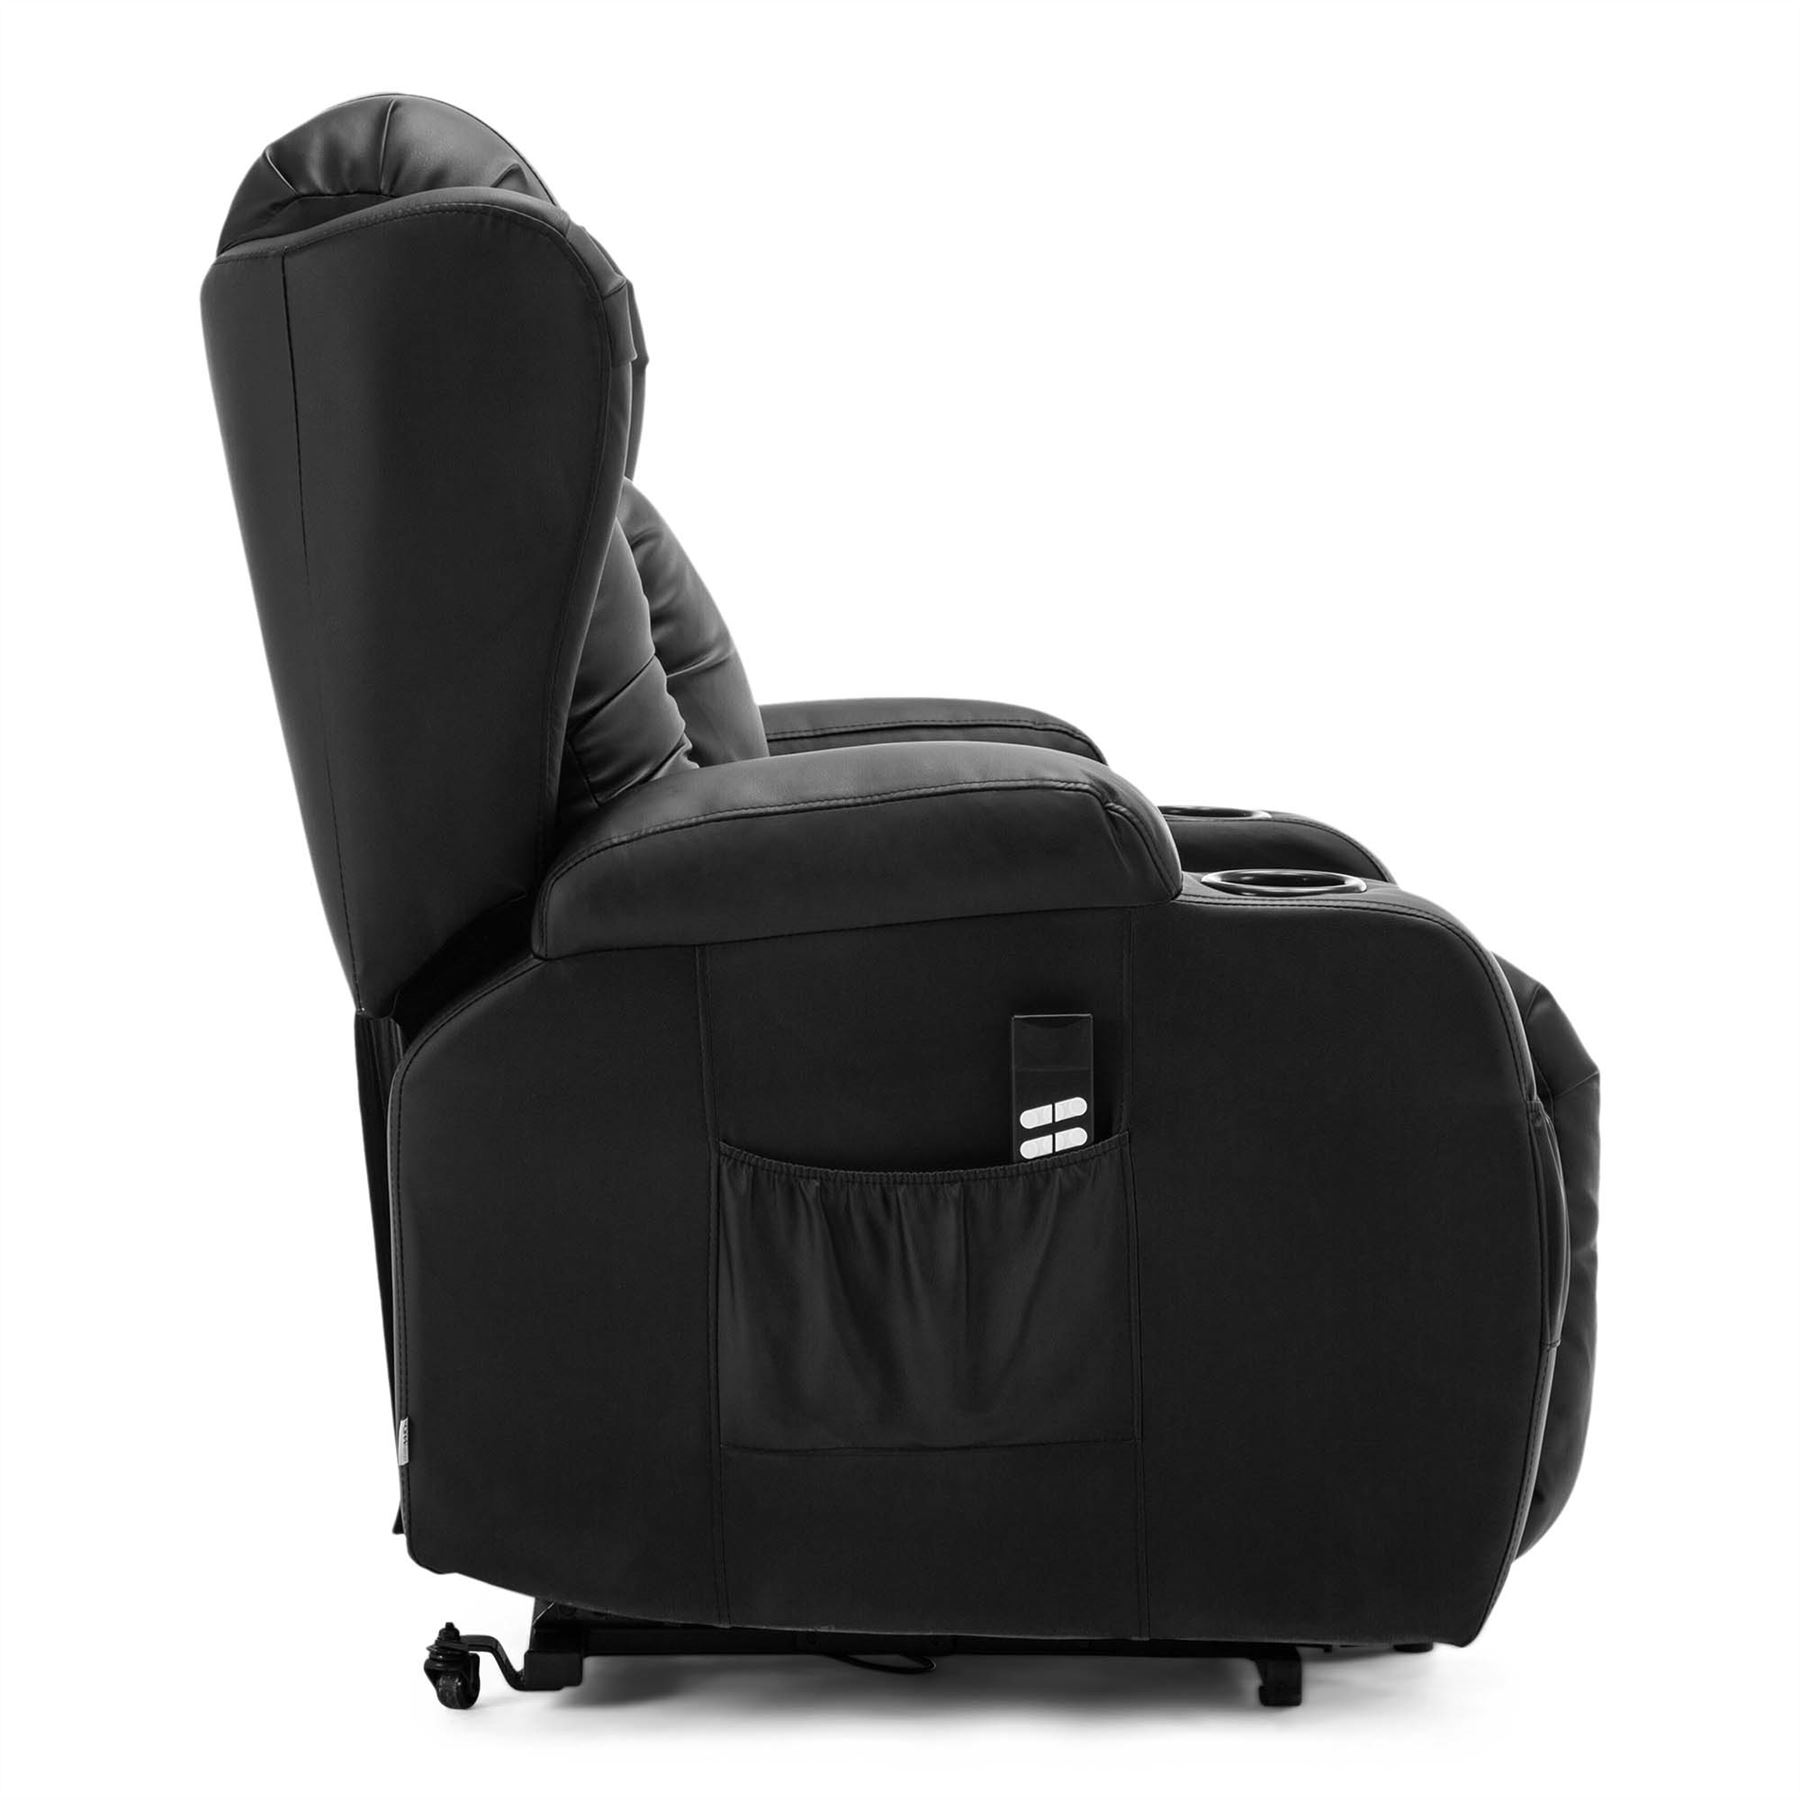 CAESAR-DUAL-MOTOR-RISER-RECLINER-LEATHER-MOBILITY-ARMCHAIR-MASSAGE-HEATED-CHAIR thumbnail 6